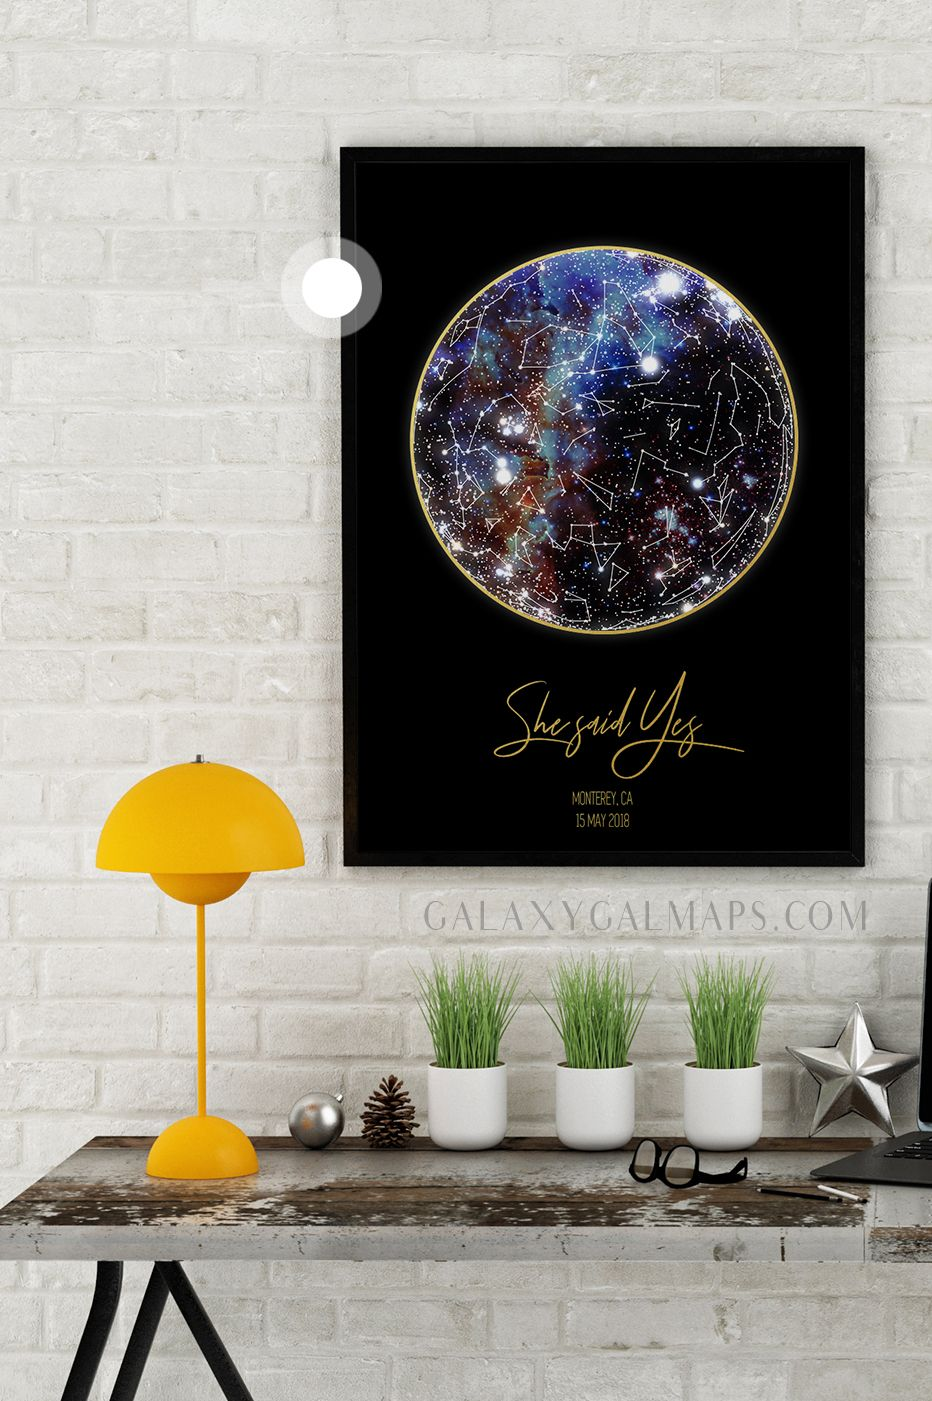 Personal Star Map By Date And Location Coordinates Wall Art Design Your Own Wall Decor Personalized S Wall Art Designs Beautiful Blog Location Coordinates